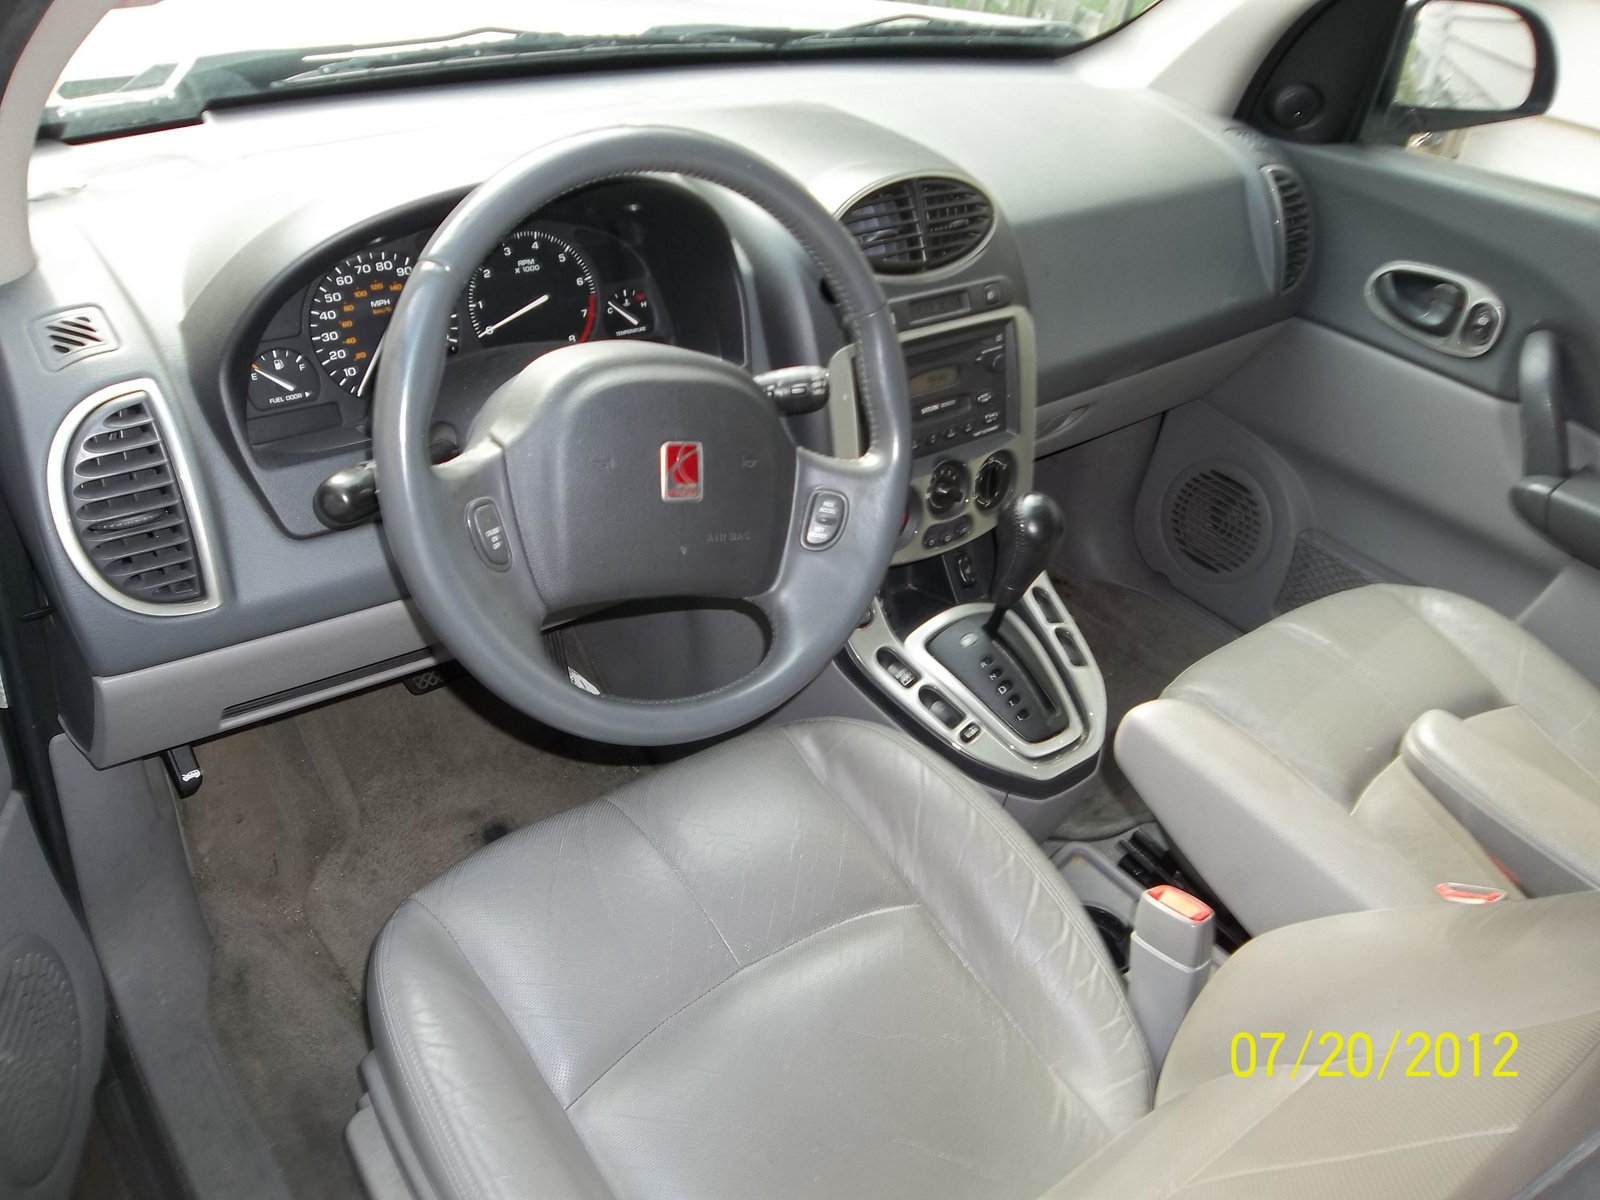 2003 saturn vue information and photos zombiedrive 2003 saturn vue 16 saturn vue 16 vanachro Gallery